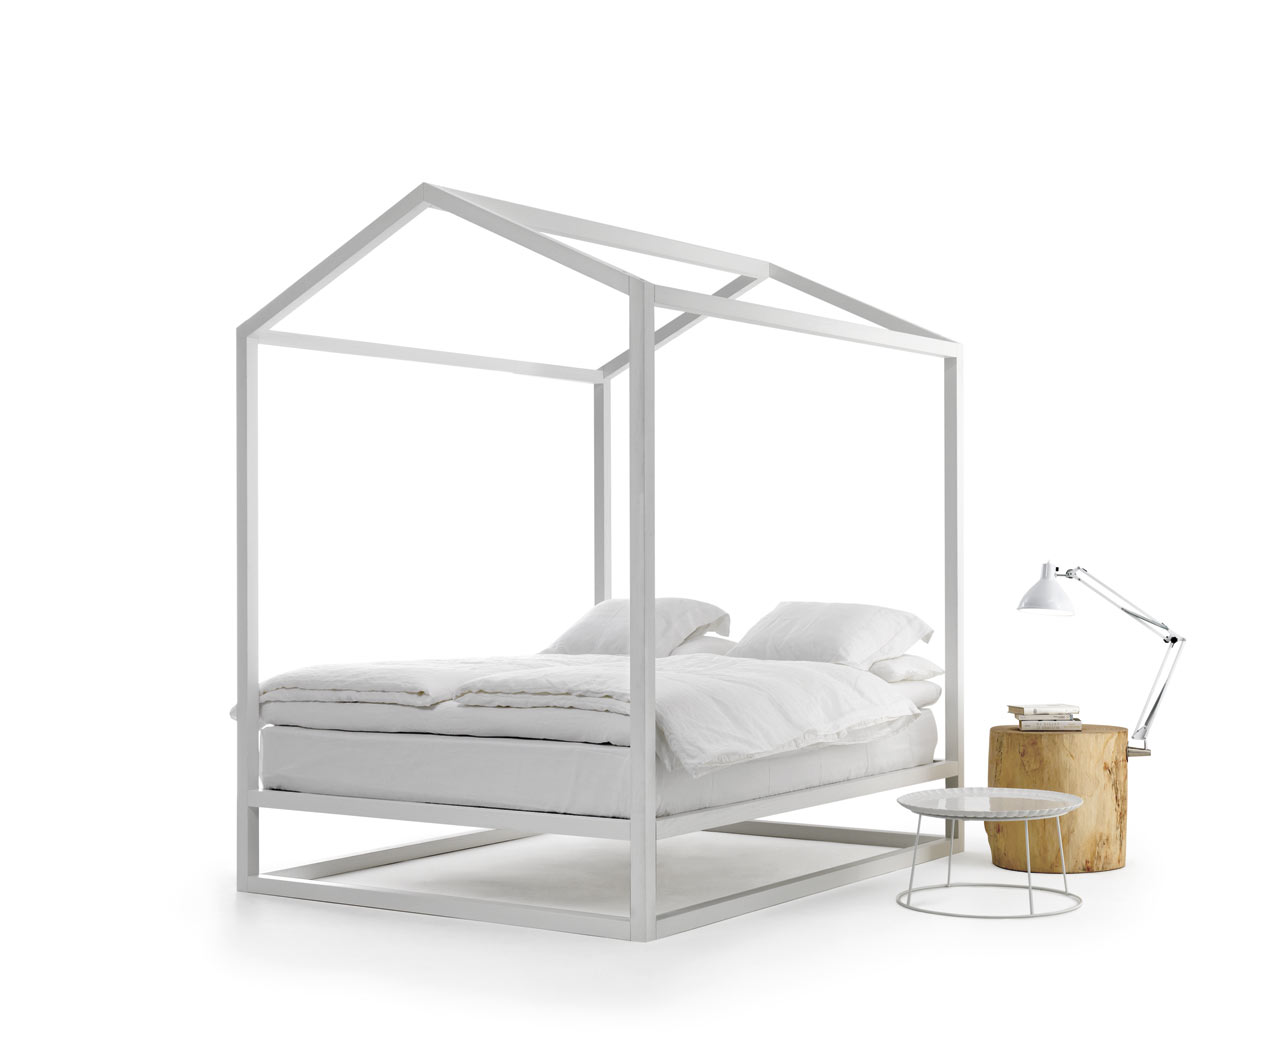 house-shaped-bed-mogg-1